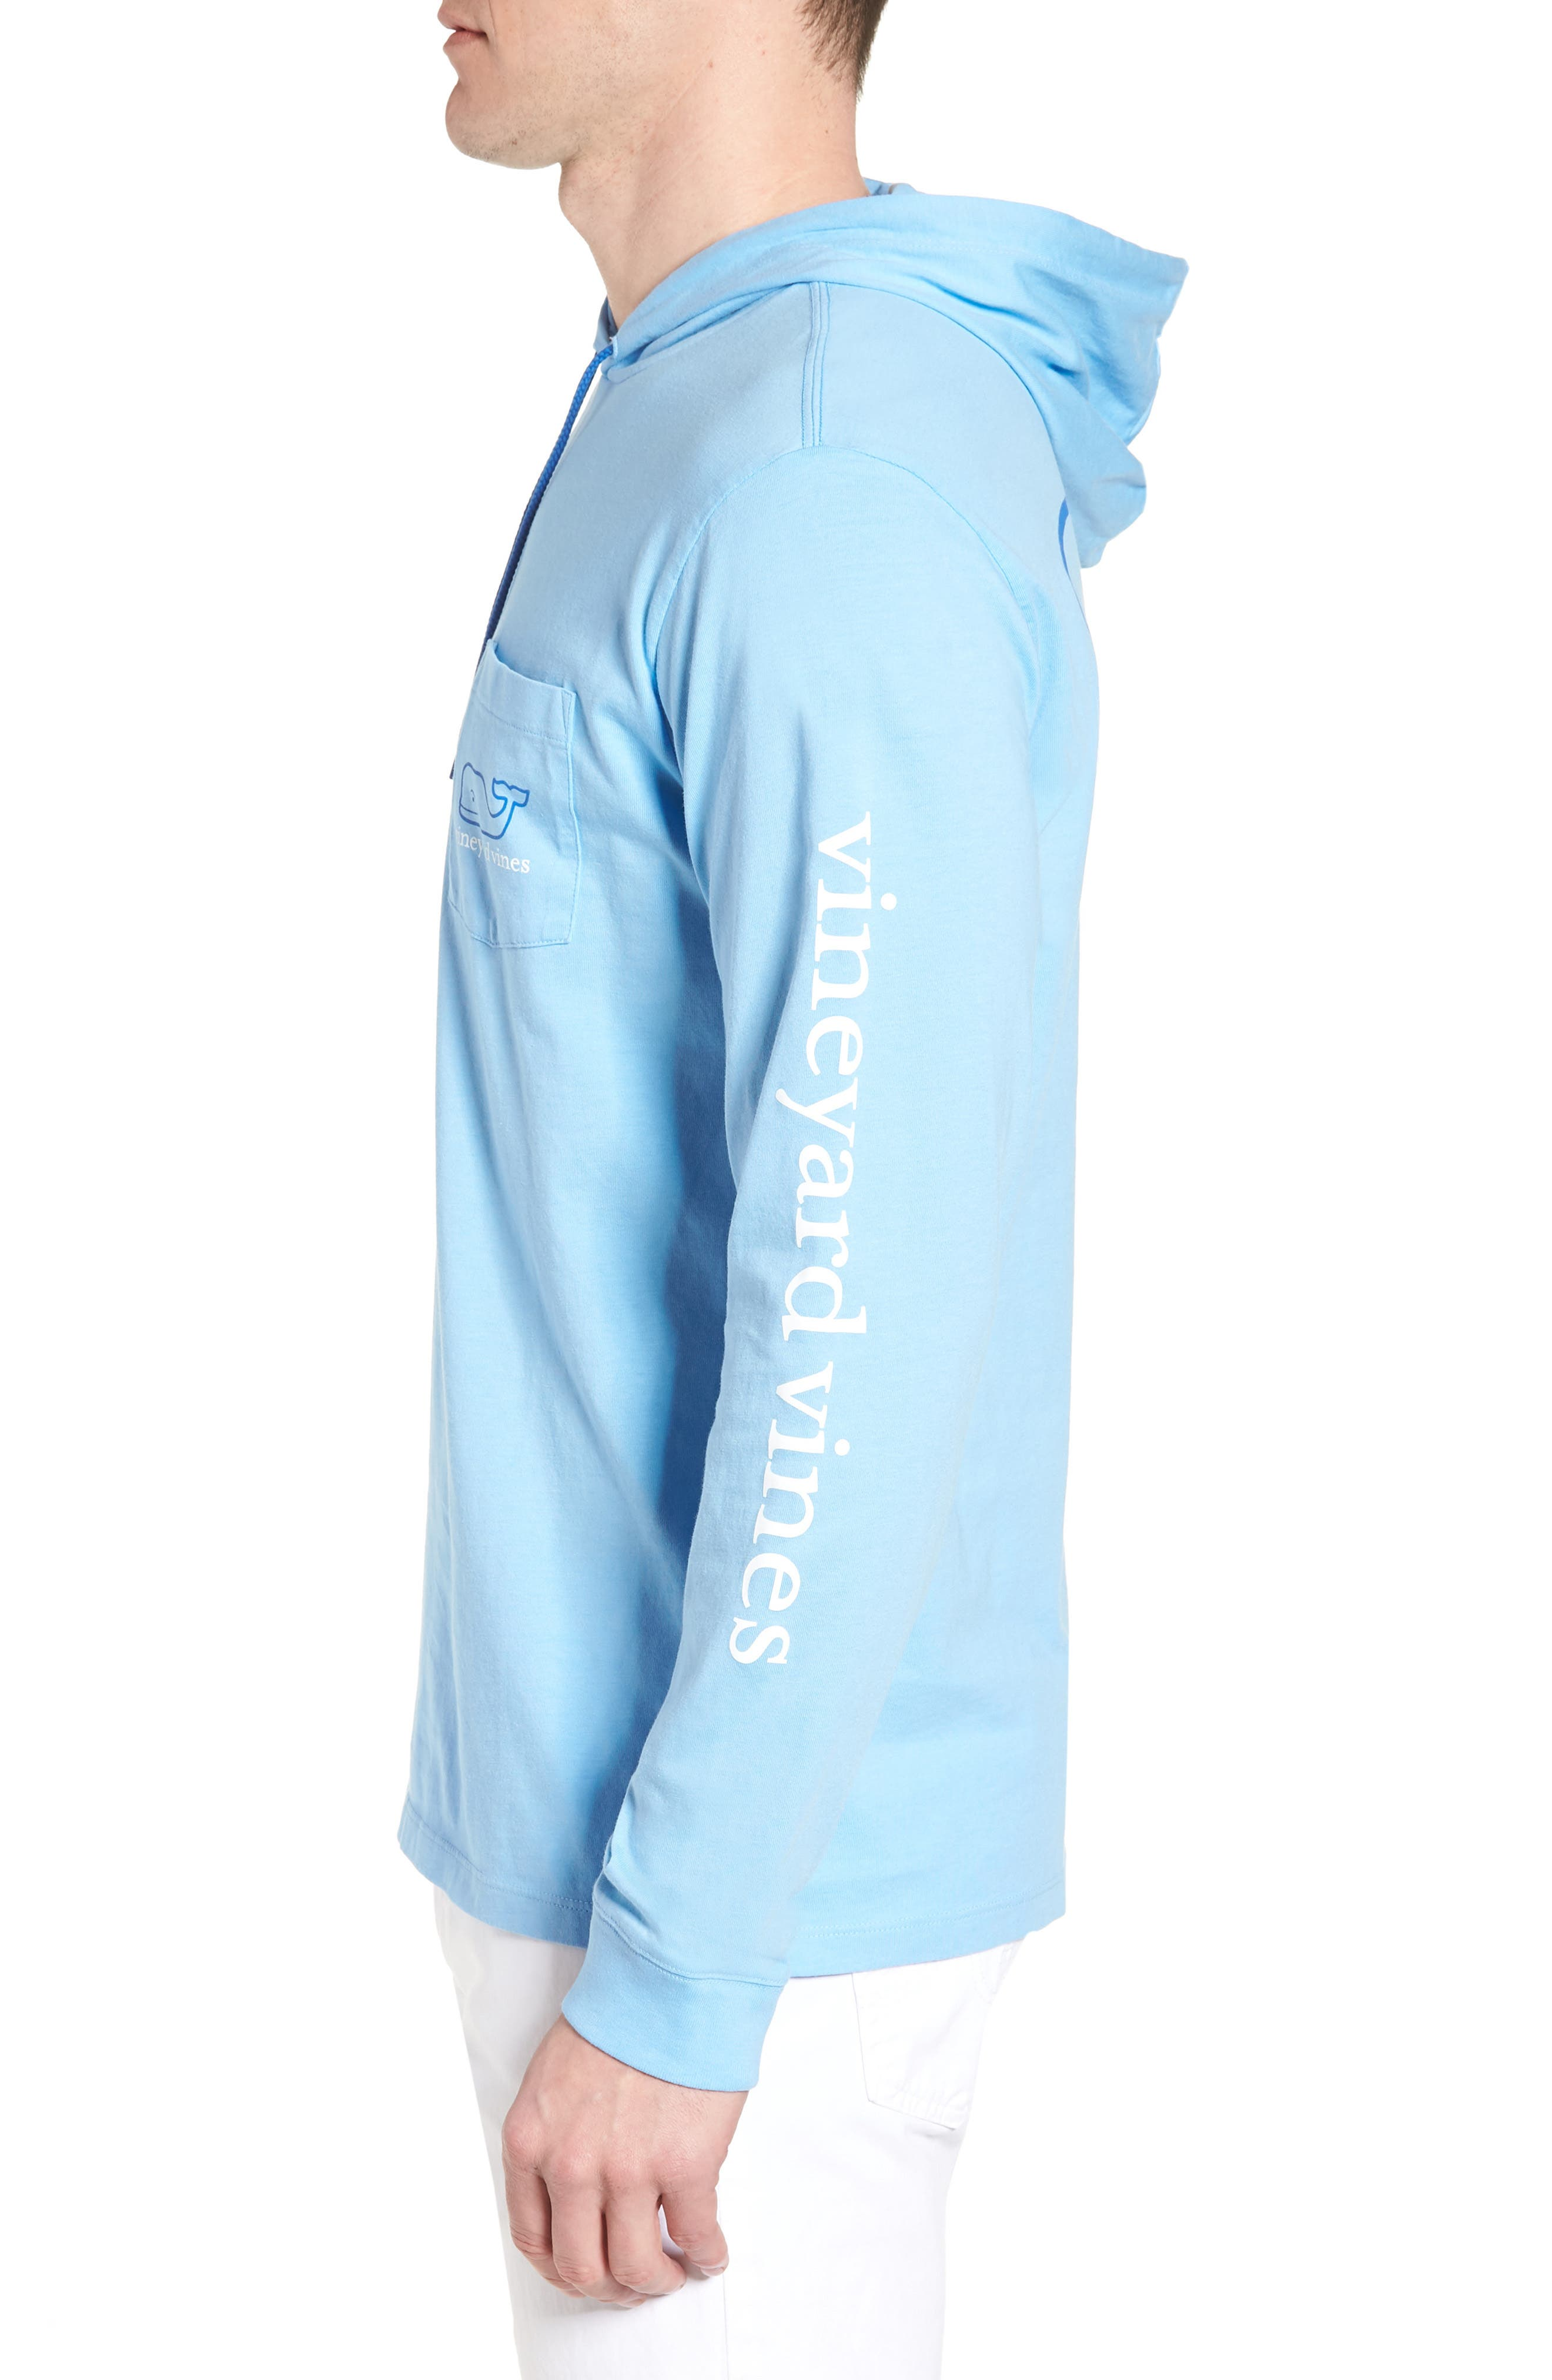 Whale Graphic Hooded T-Shirt,                             Alternate thumbnail 3, color,                             Ocean Breeze